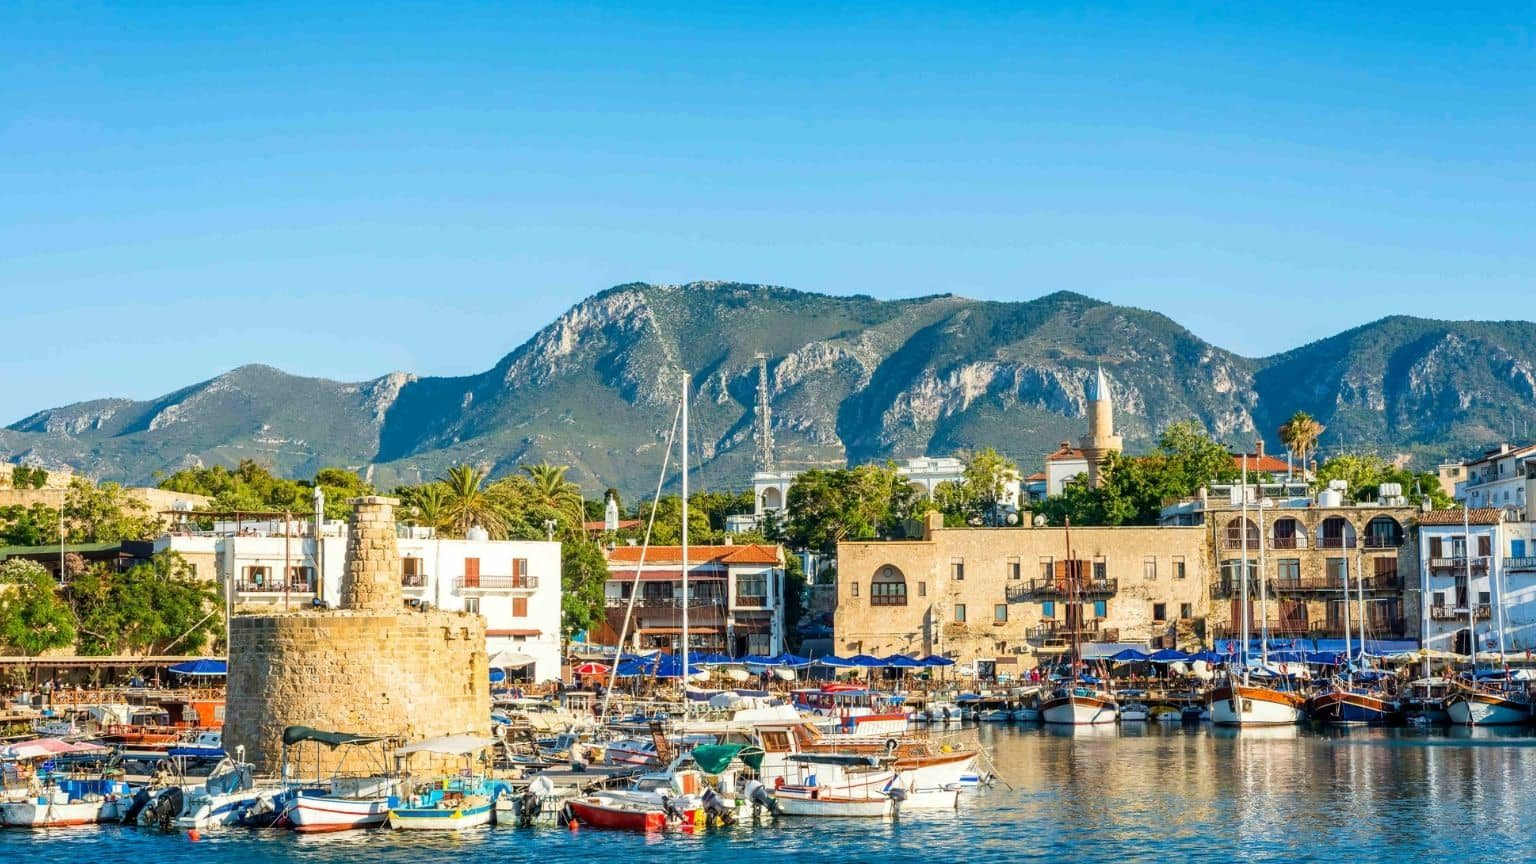 Ancient tower in Kyrenia Harbour, Cyprus